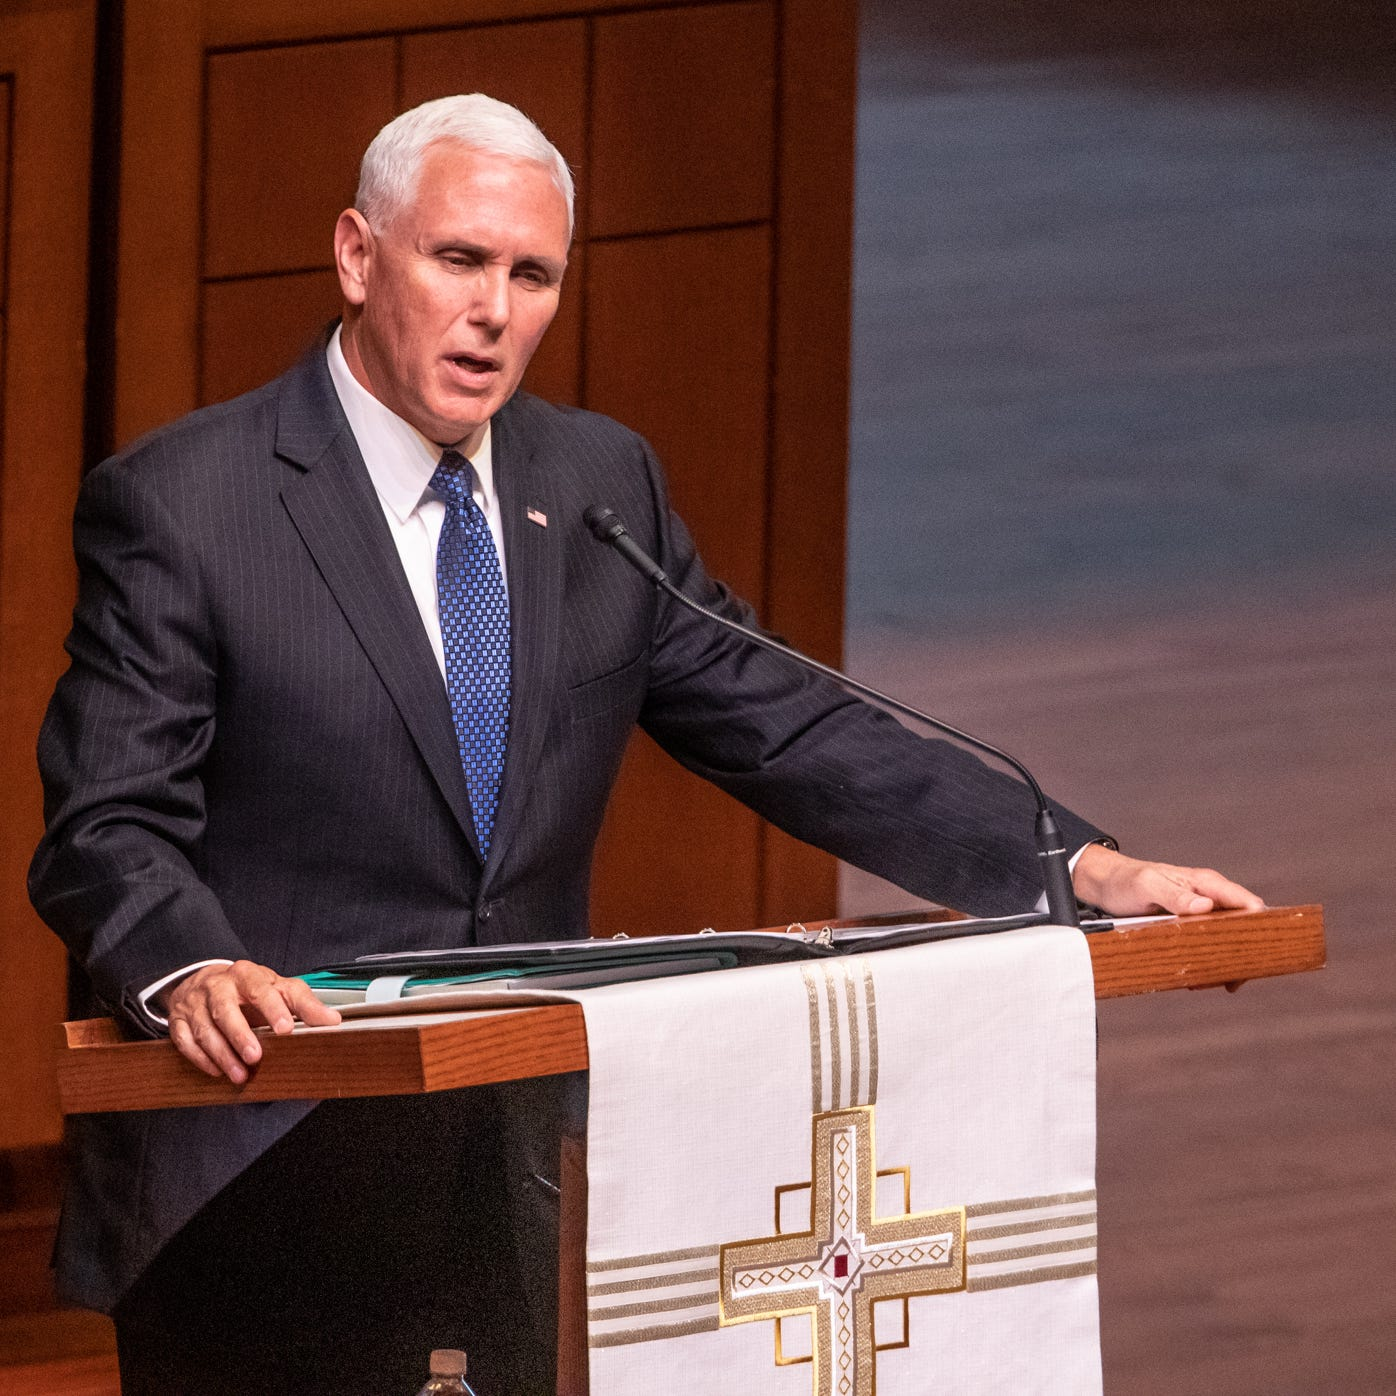 How to watch Mike Pence's Taylor University commencement address